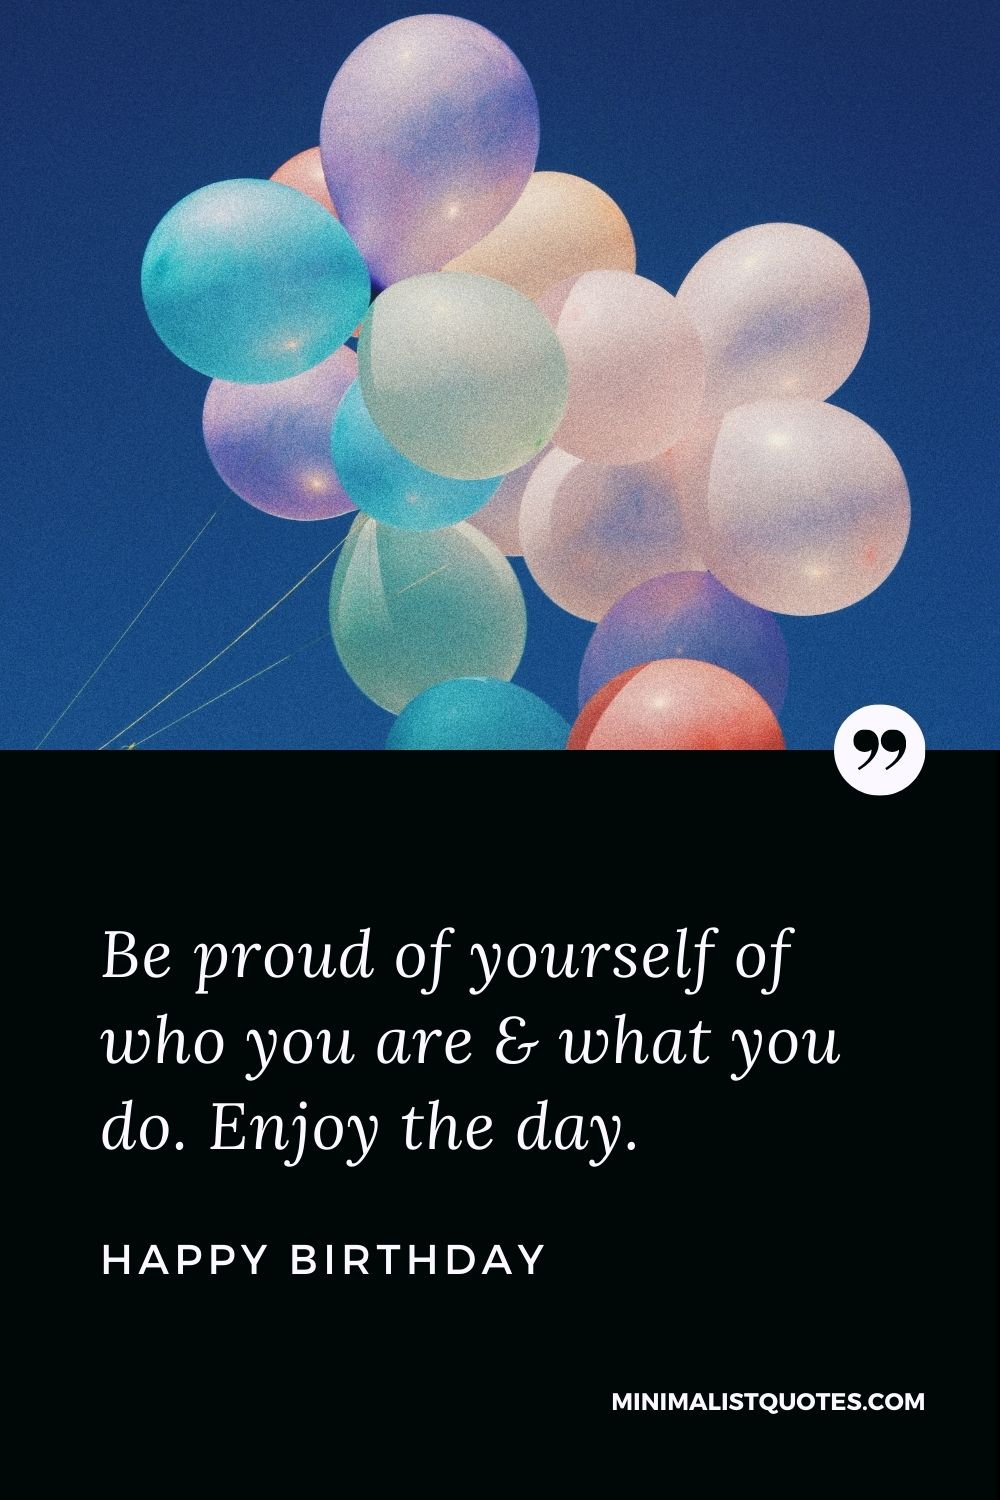 Happy Birthday Wishes - Be proud of yourself of who you are & what you do. Enjoy the day.